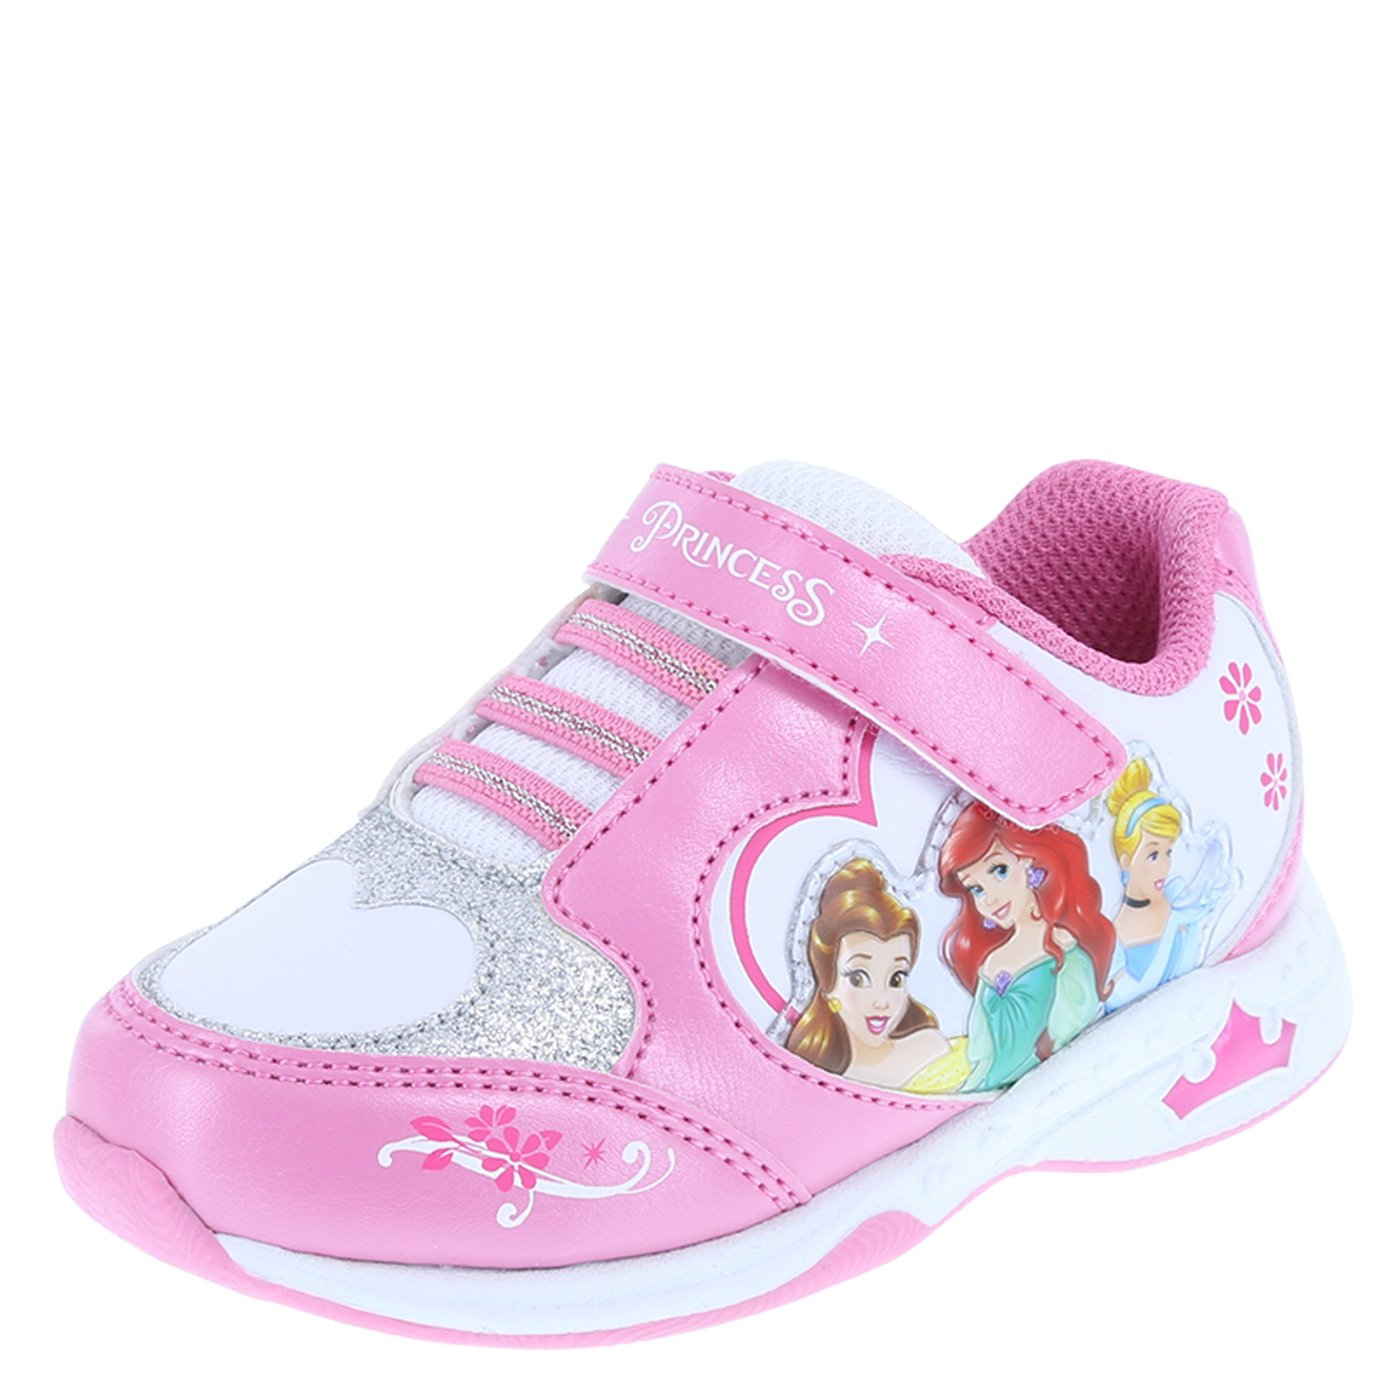 Disney Princess Girls' Toddler Princess Light-up Runner 079420-Parent